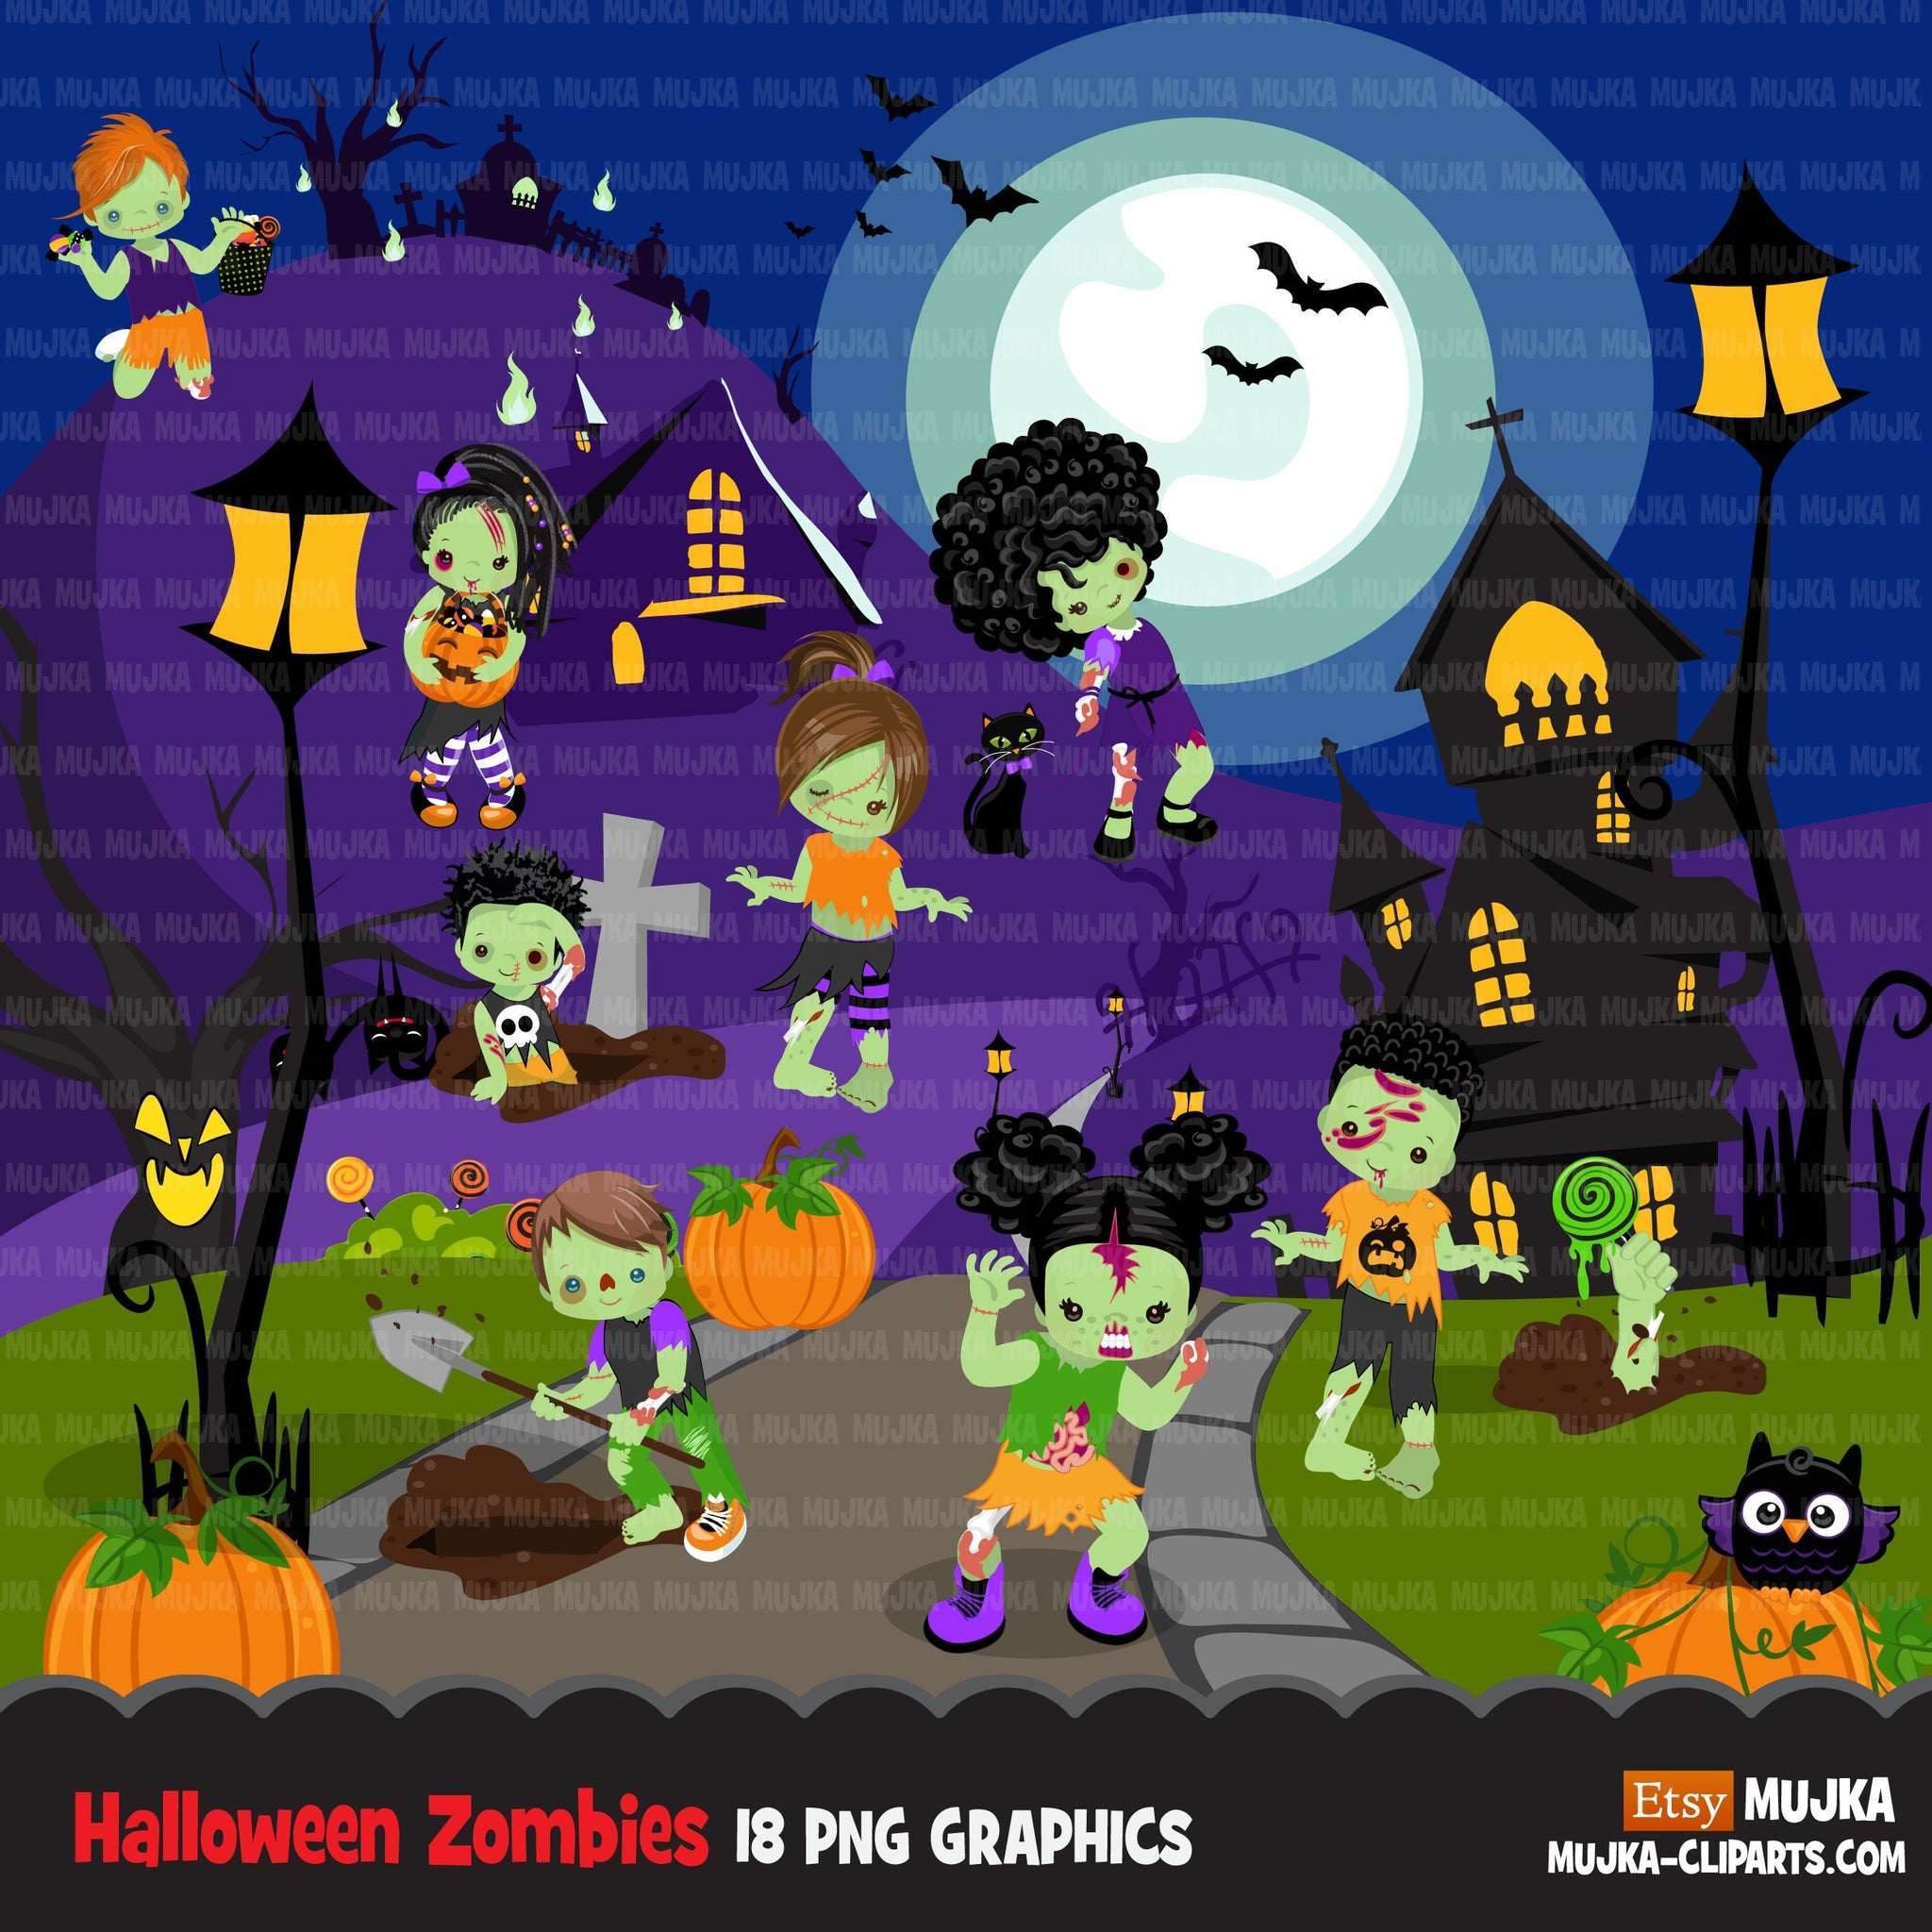 Halloween clipart, zombie clipart, zombie kids, grave, rip, brains png graphics, sublimation designs, Halloween party